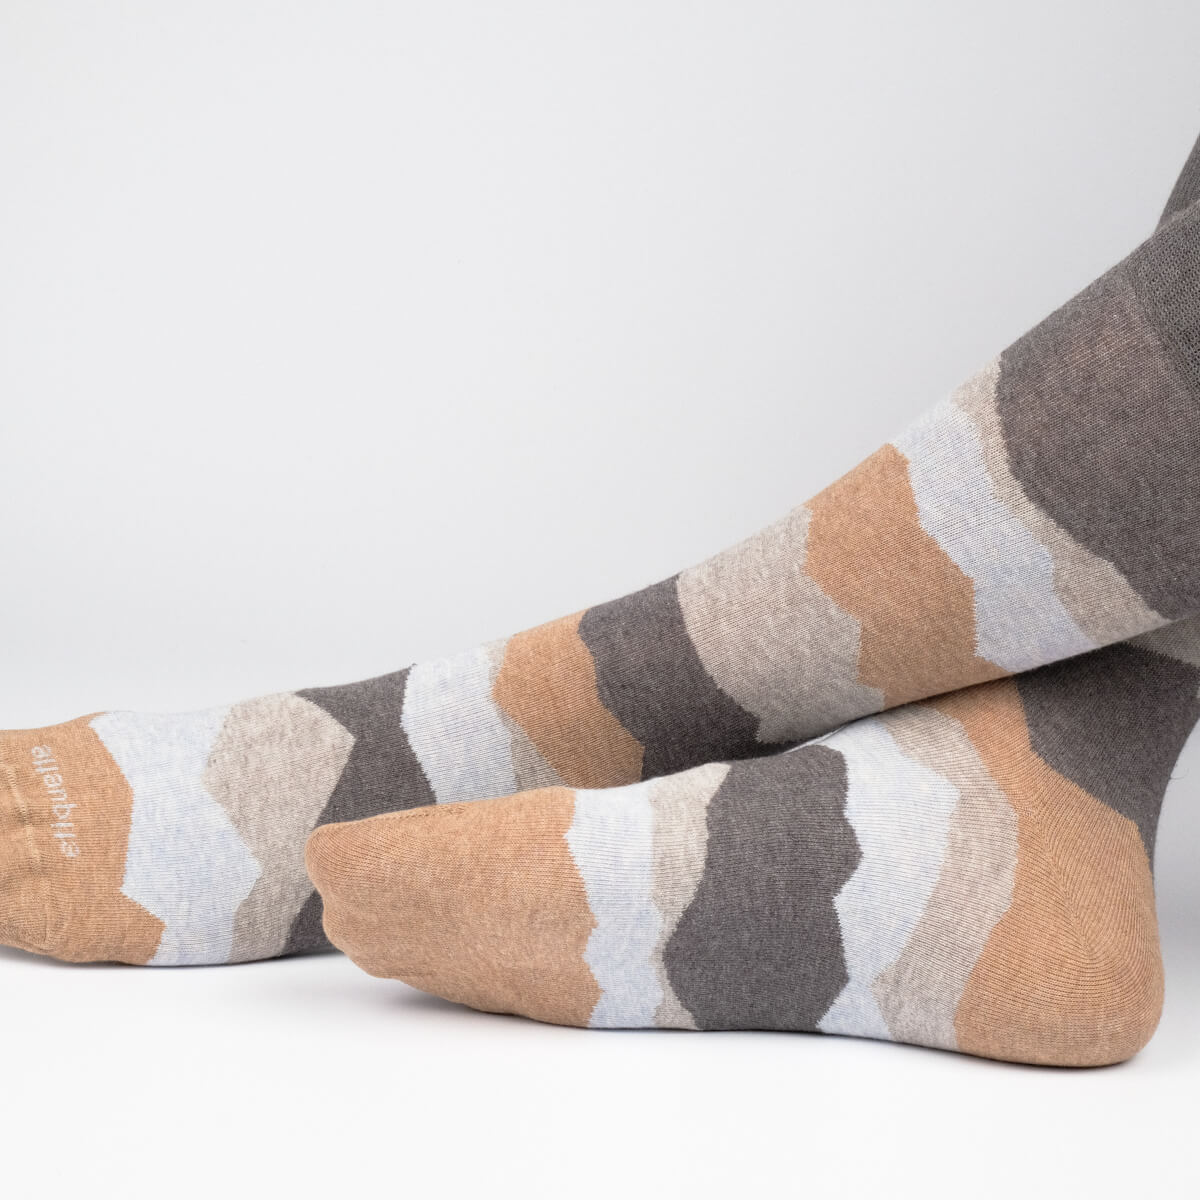 Mens Socks - Seismic Men's Socks - Dark Grey⎪Etiquette Clothiers